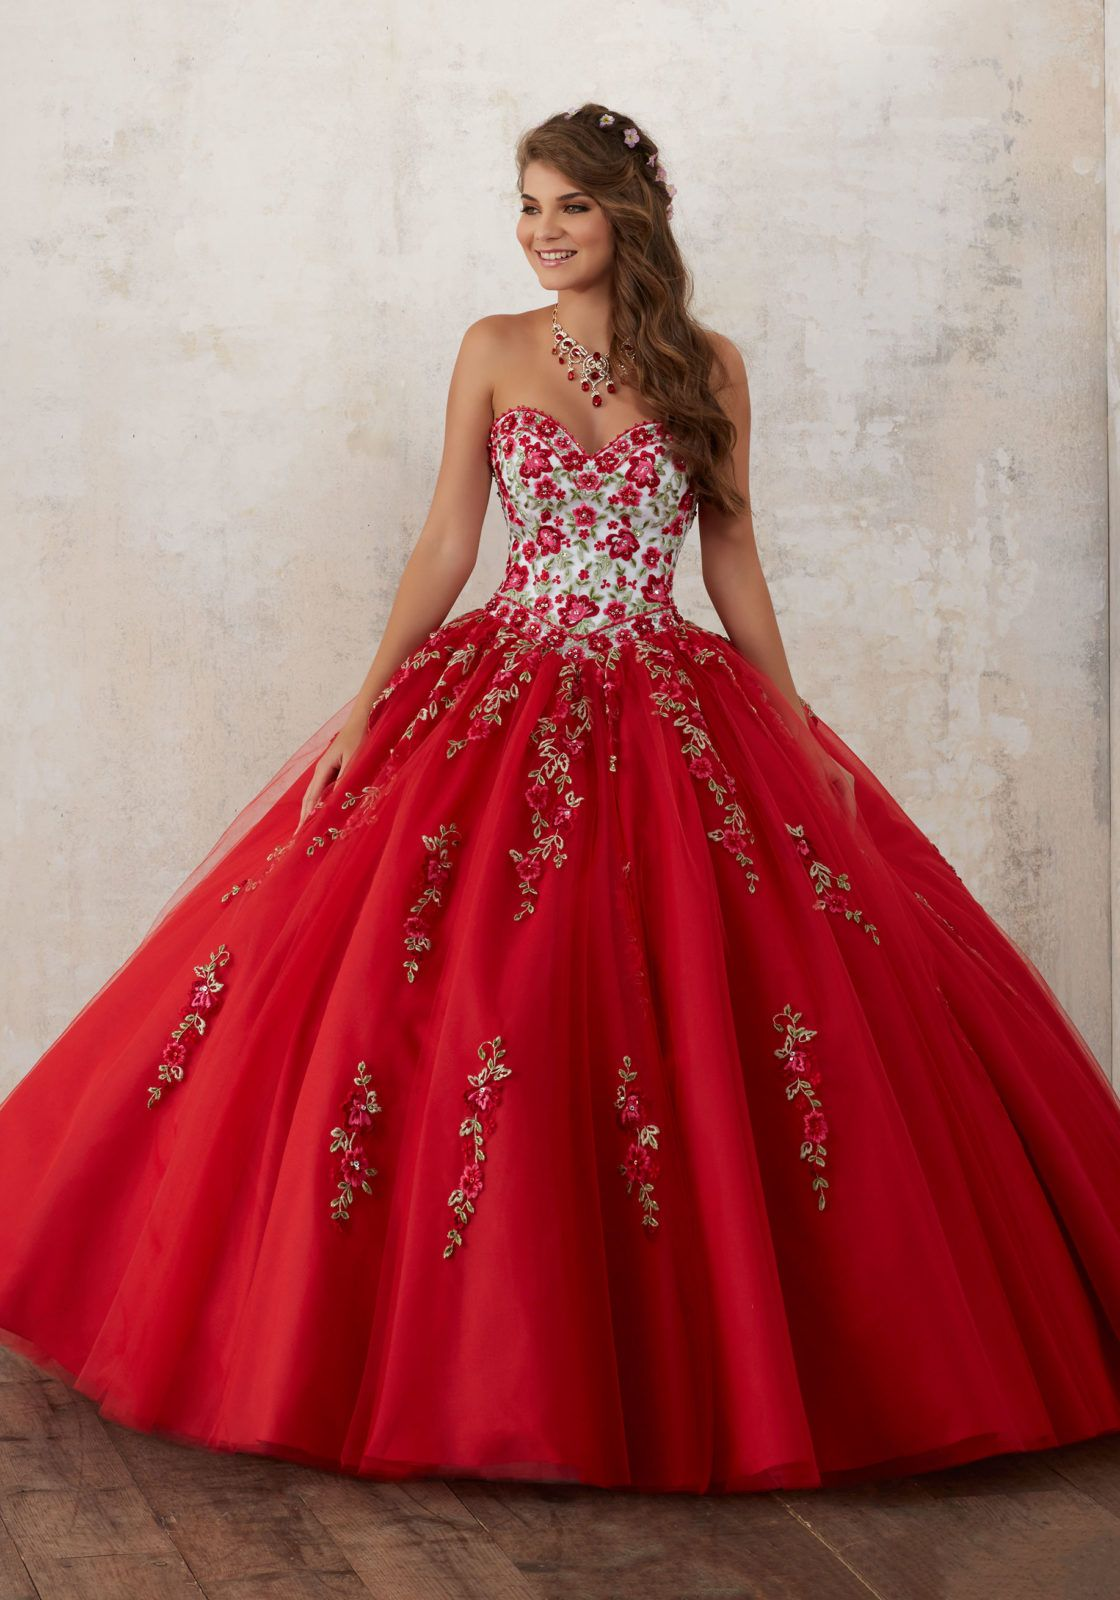 15 Pretty In Pink Quinceanera Dresses You 8217 Ll Want To Buy Asap